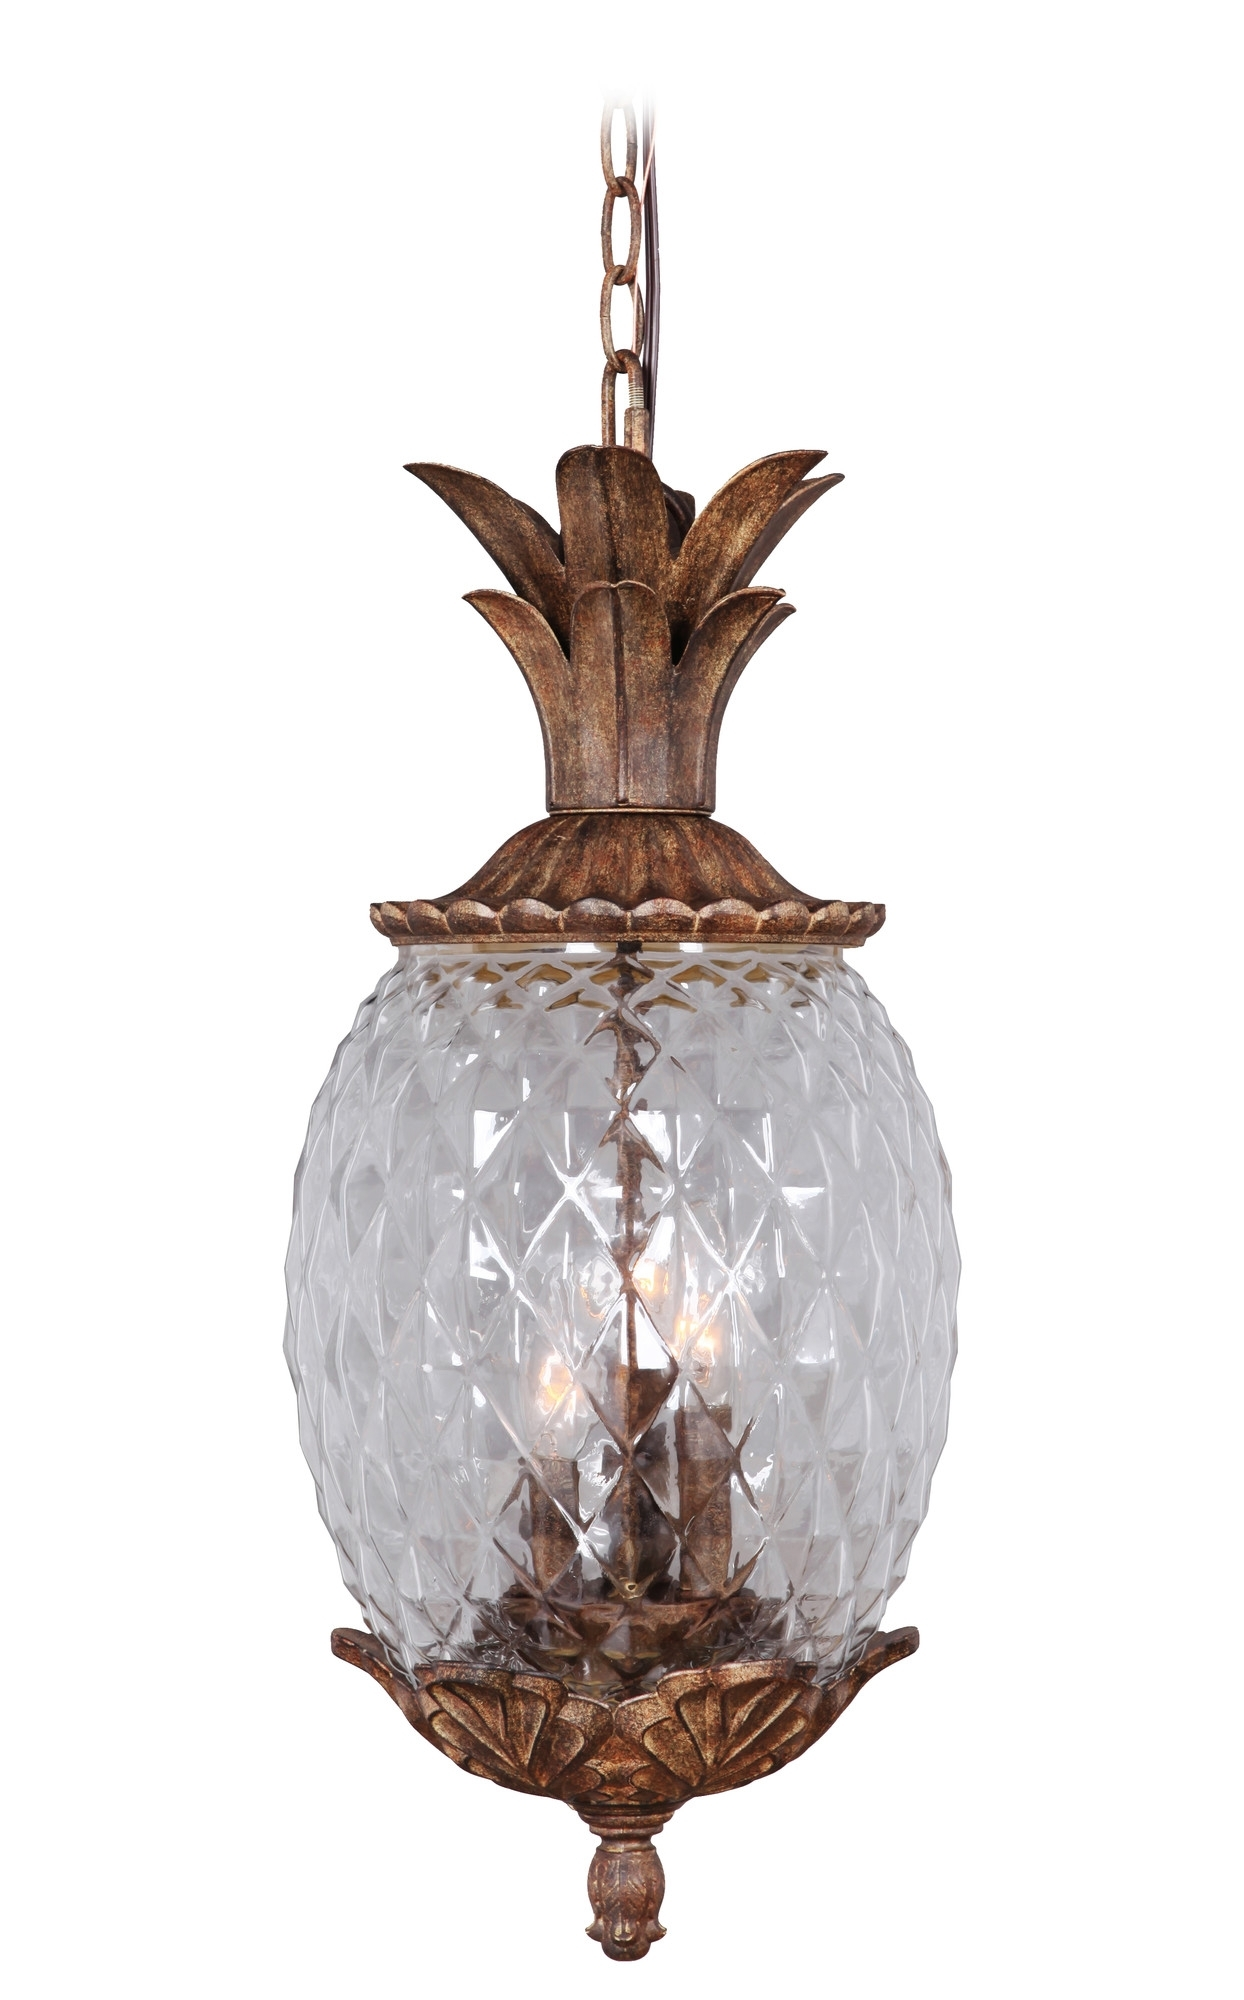 Marianahome Pineapple 3 Light Pendant & Reviews | Wayfair | Lighting With Regard To Outdoor Lighting And Light Fixtures At Wayfair (View 4 of 15)